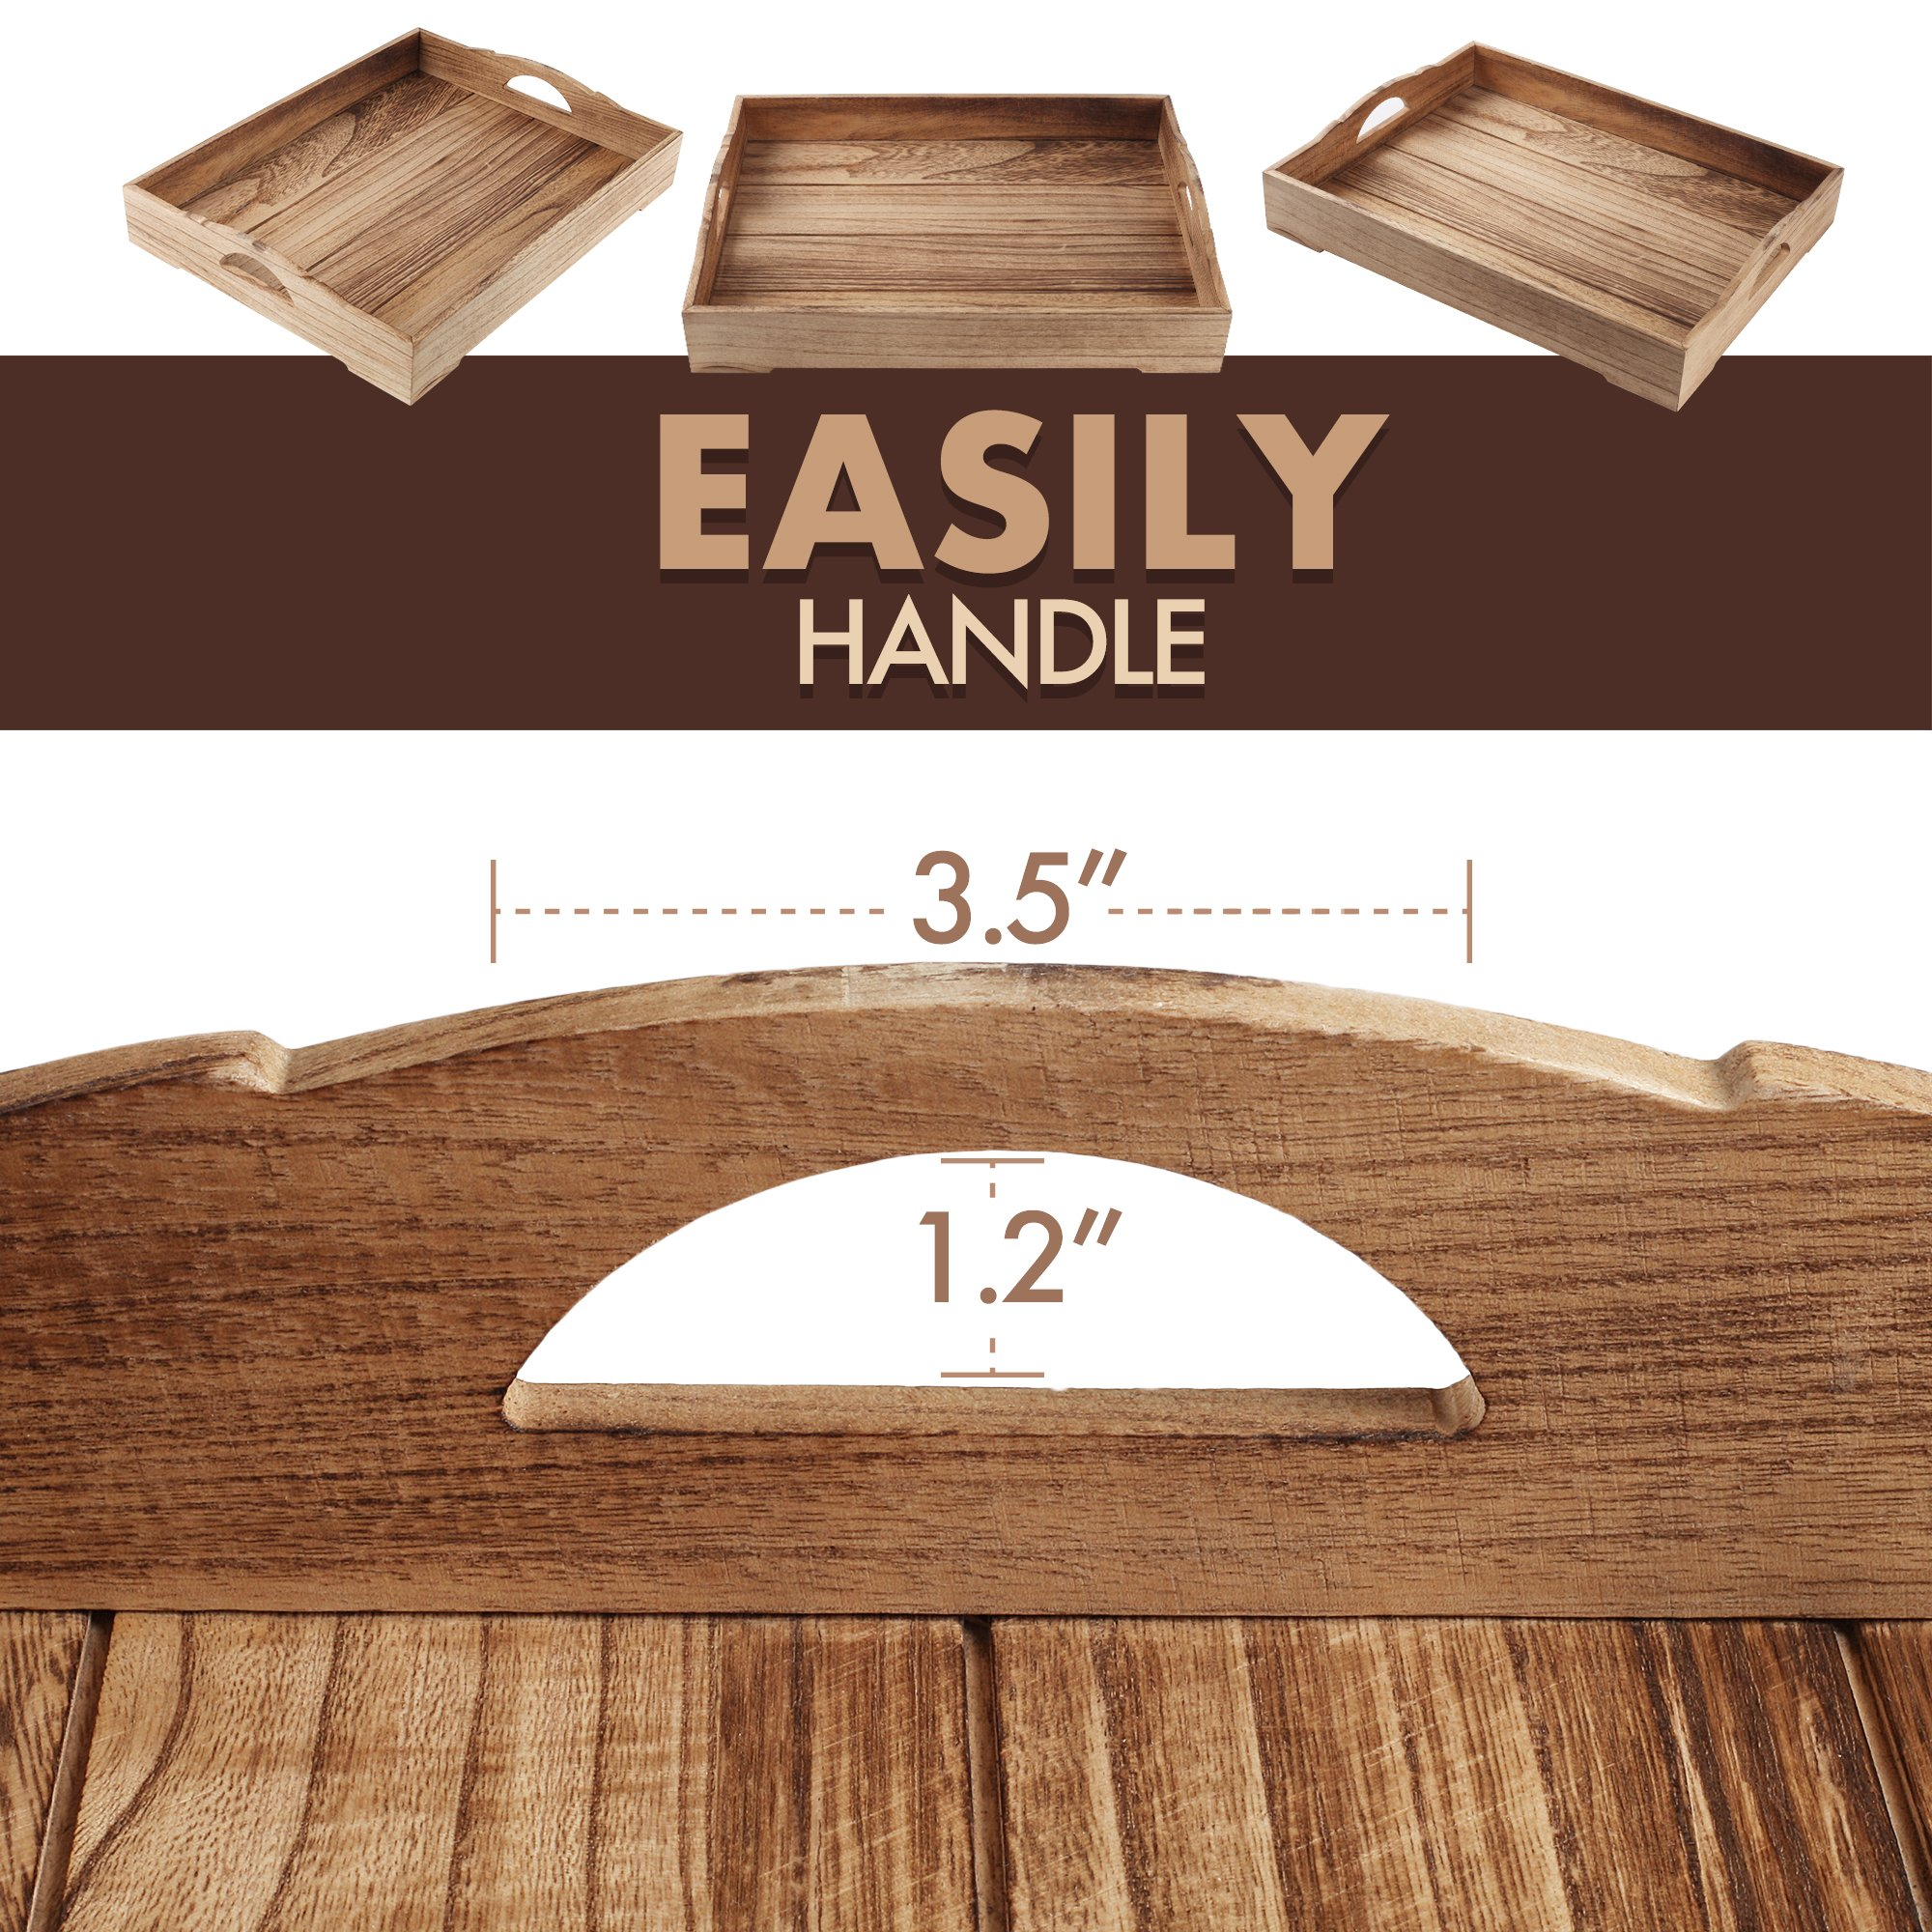 Wood Serving Tray – Suitable for use as an Ottoman Tray, Breakfast in Bed Tray and Home Décor Style Piece – Easy to Carry Handles – 18 x 14 inches – Natural Wood + FREE Home Décor eBook by lifetoenjoy (Image #4)